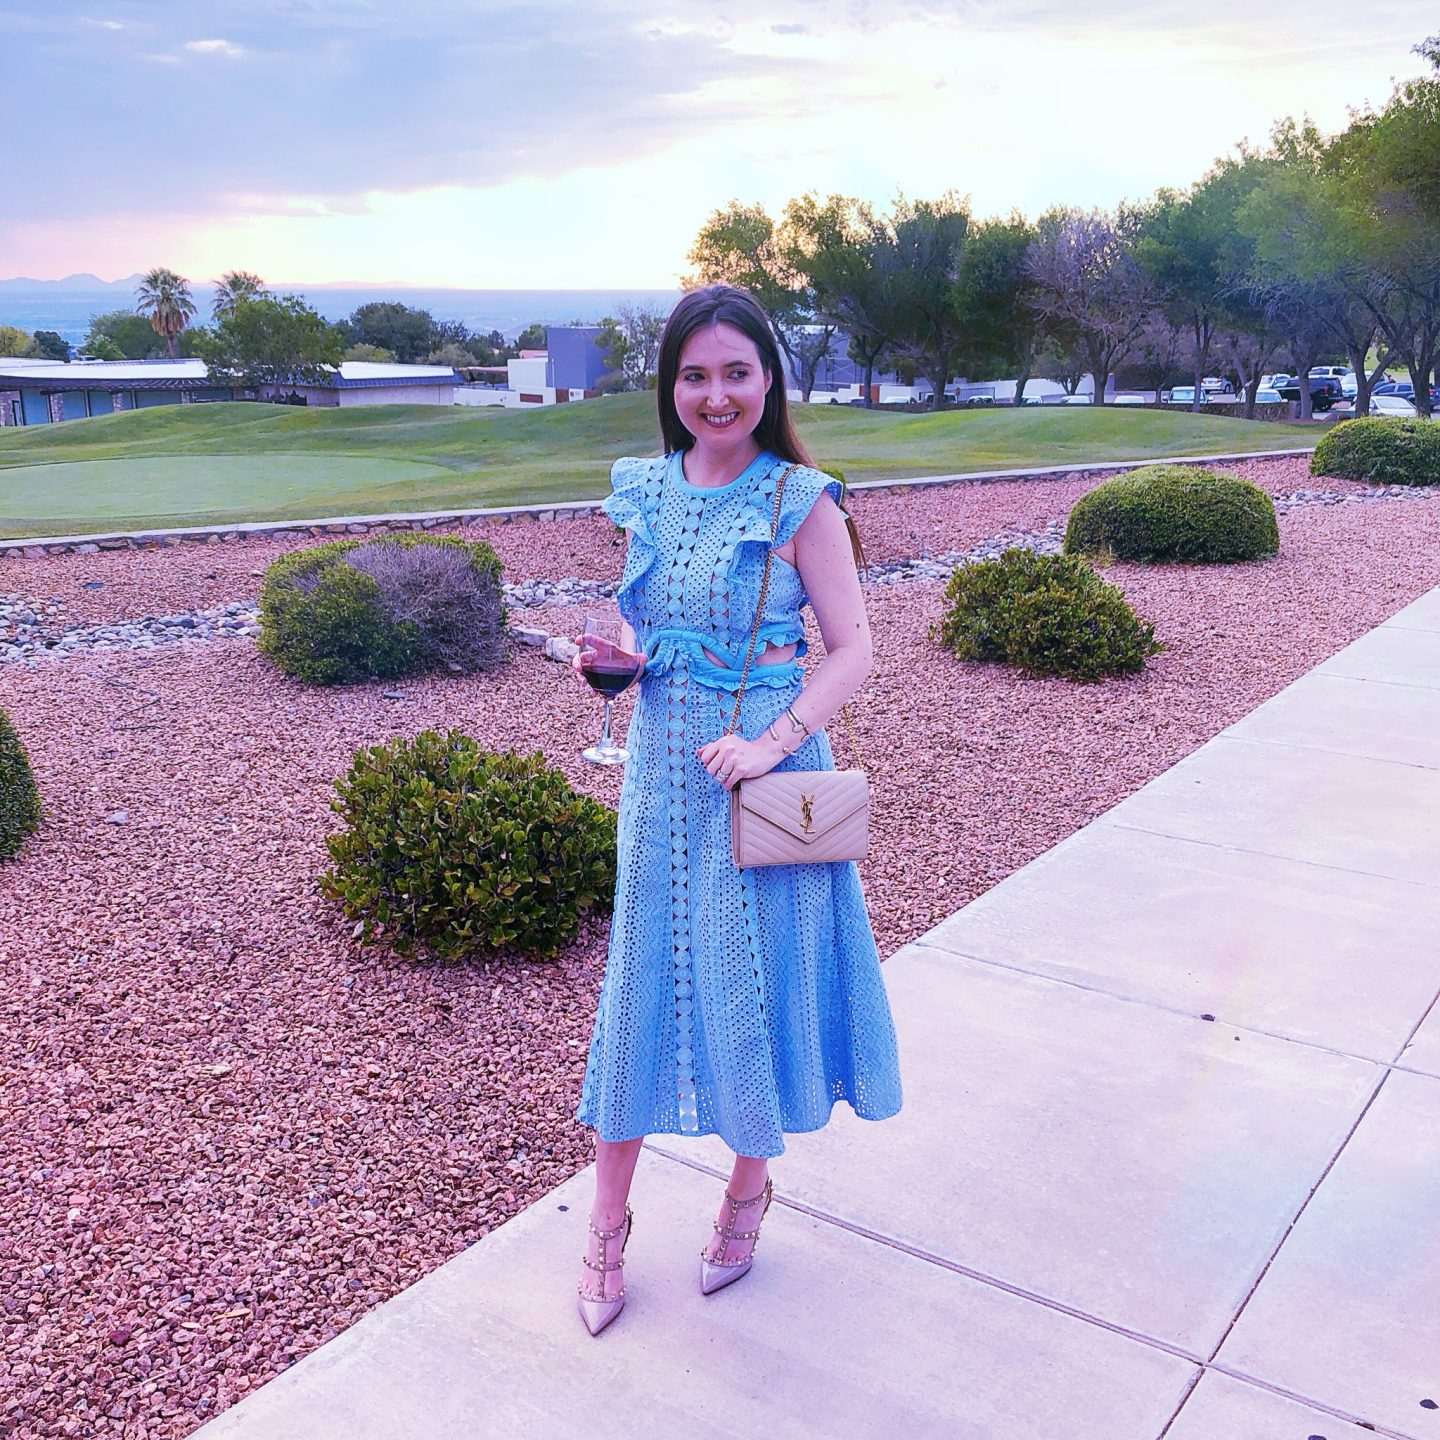 A wedding weekend in El Paso Texas, travel to el paso, el paso texas, self portrait dress, self portrait blue lace dress, saint laurent wallet on chain, ysl wallet on chain, mountains in el paso, el paso travel, el paso travel guide, what to do in el paso, what to wear in el paso, el paso travel